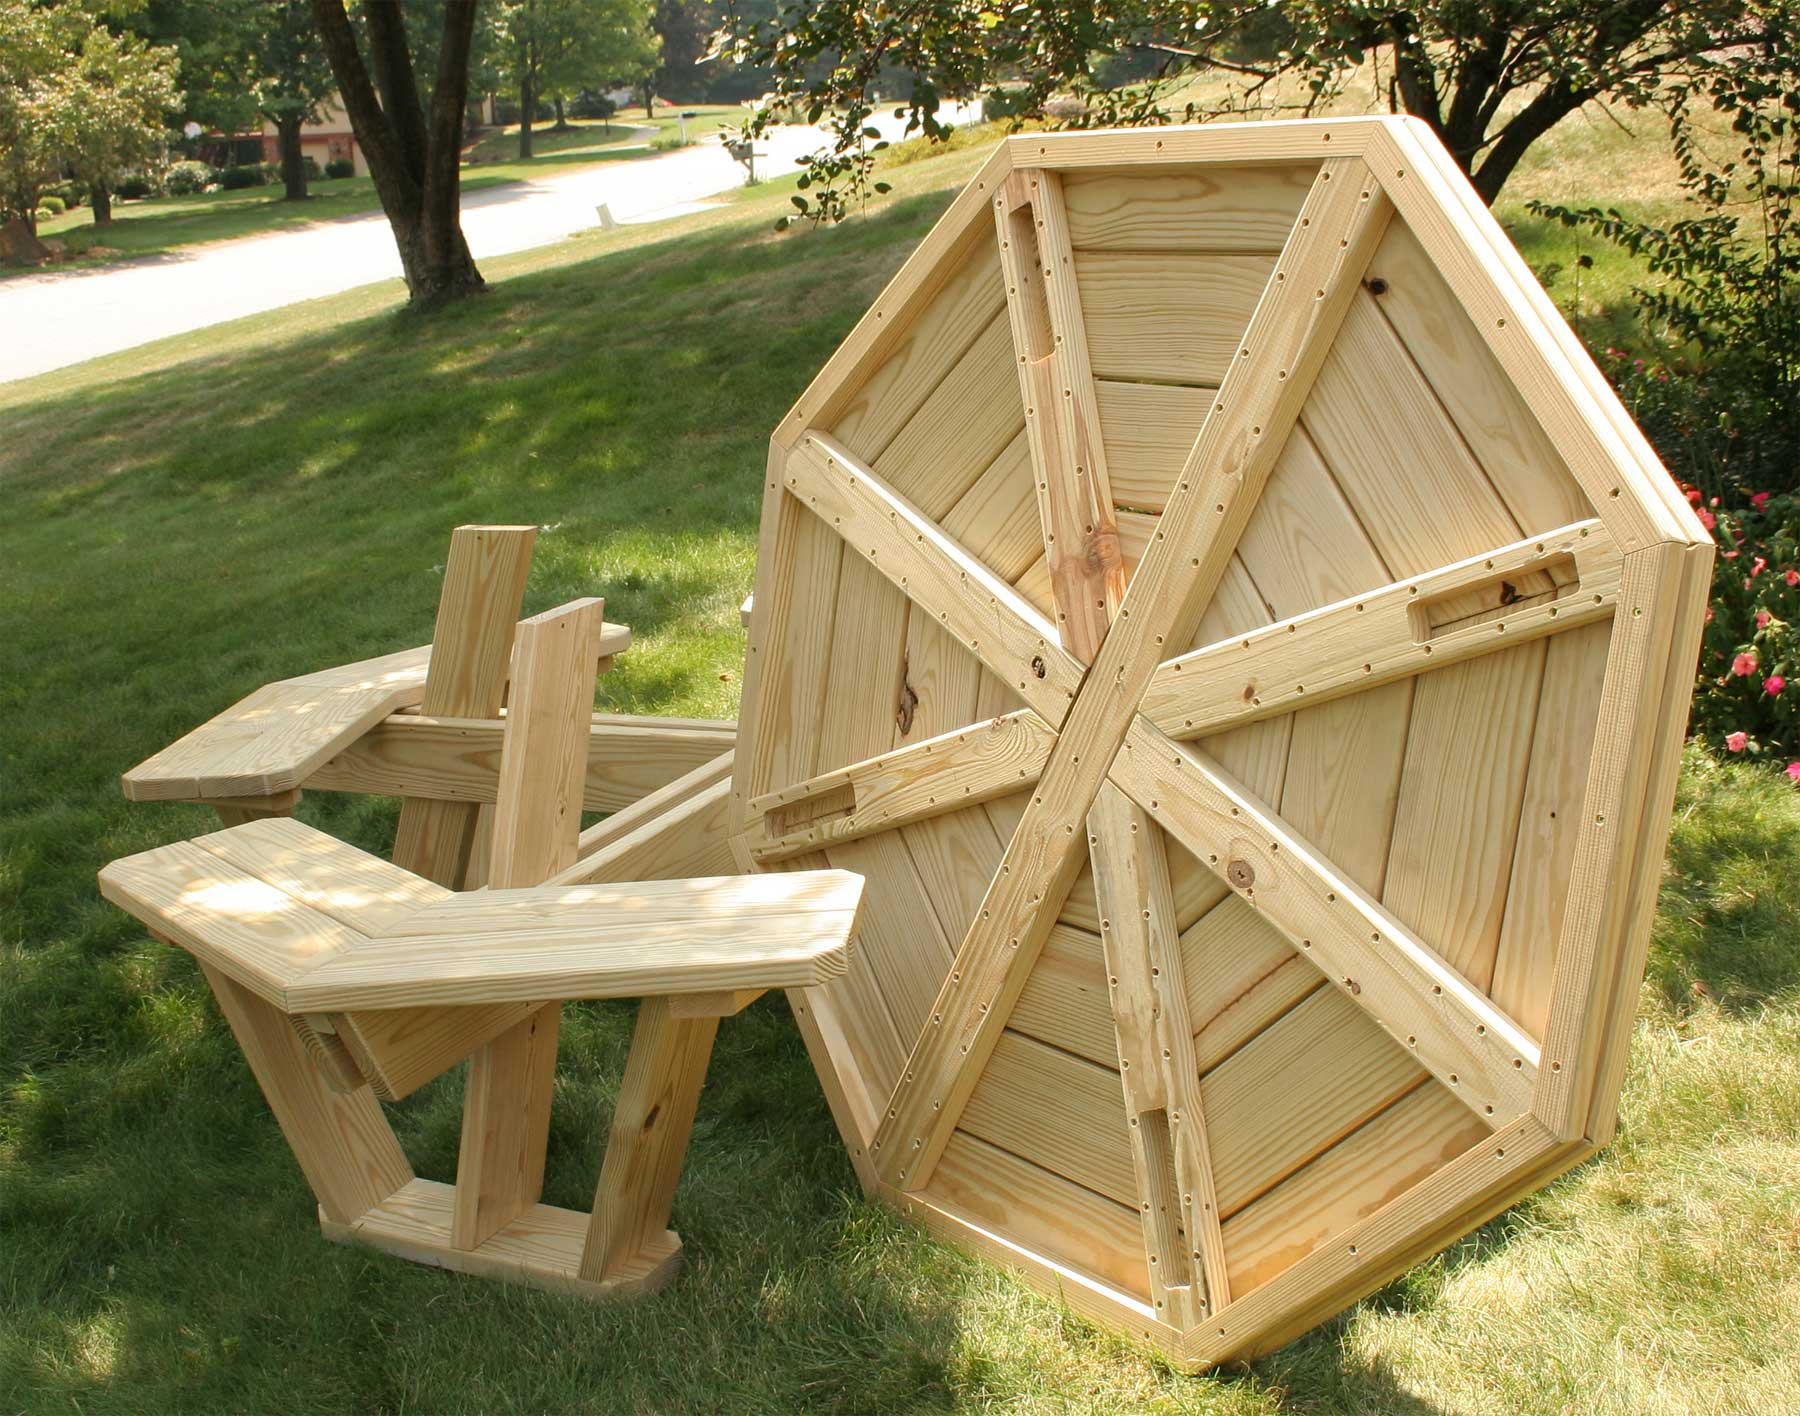 ... scratch. … 2) Overachievers: Hexagonal, Octagonal Picnic Table Plans